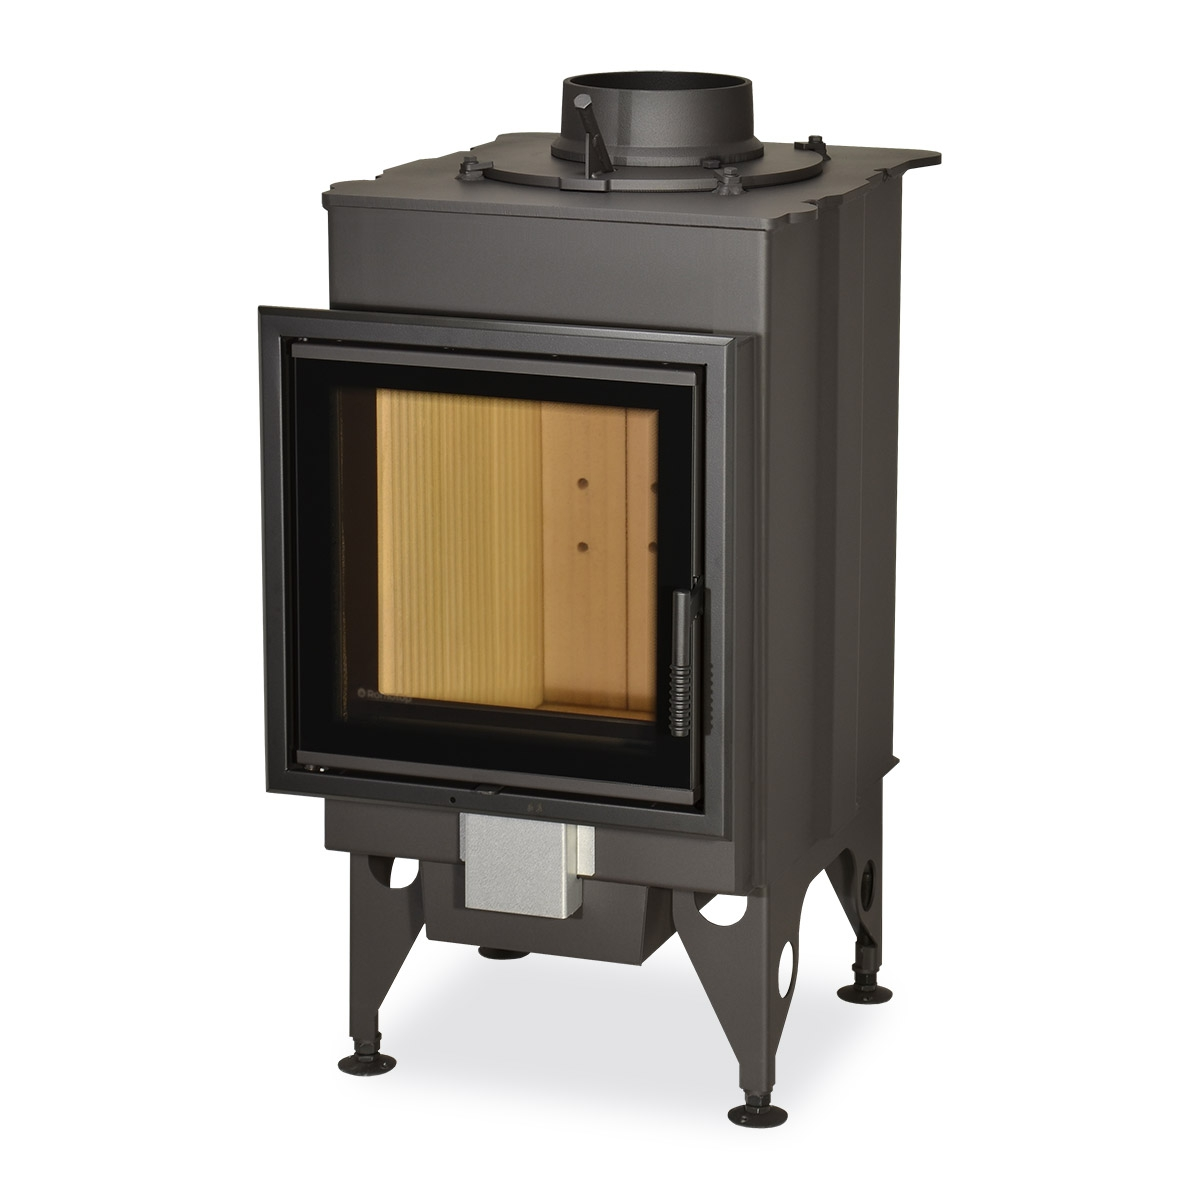 KV 025 N01 - fireplace insert with double glazing